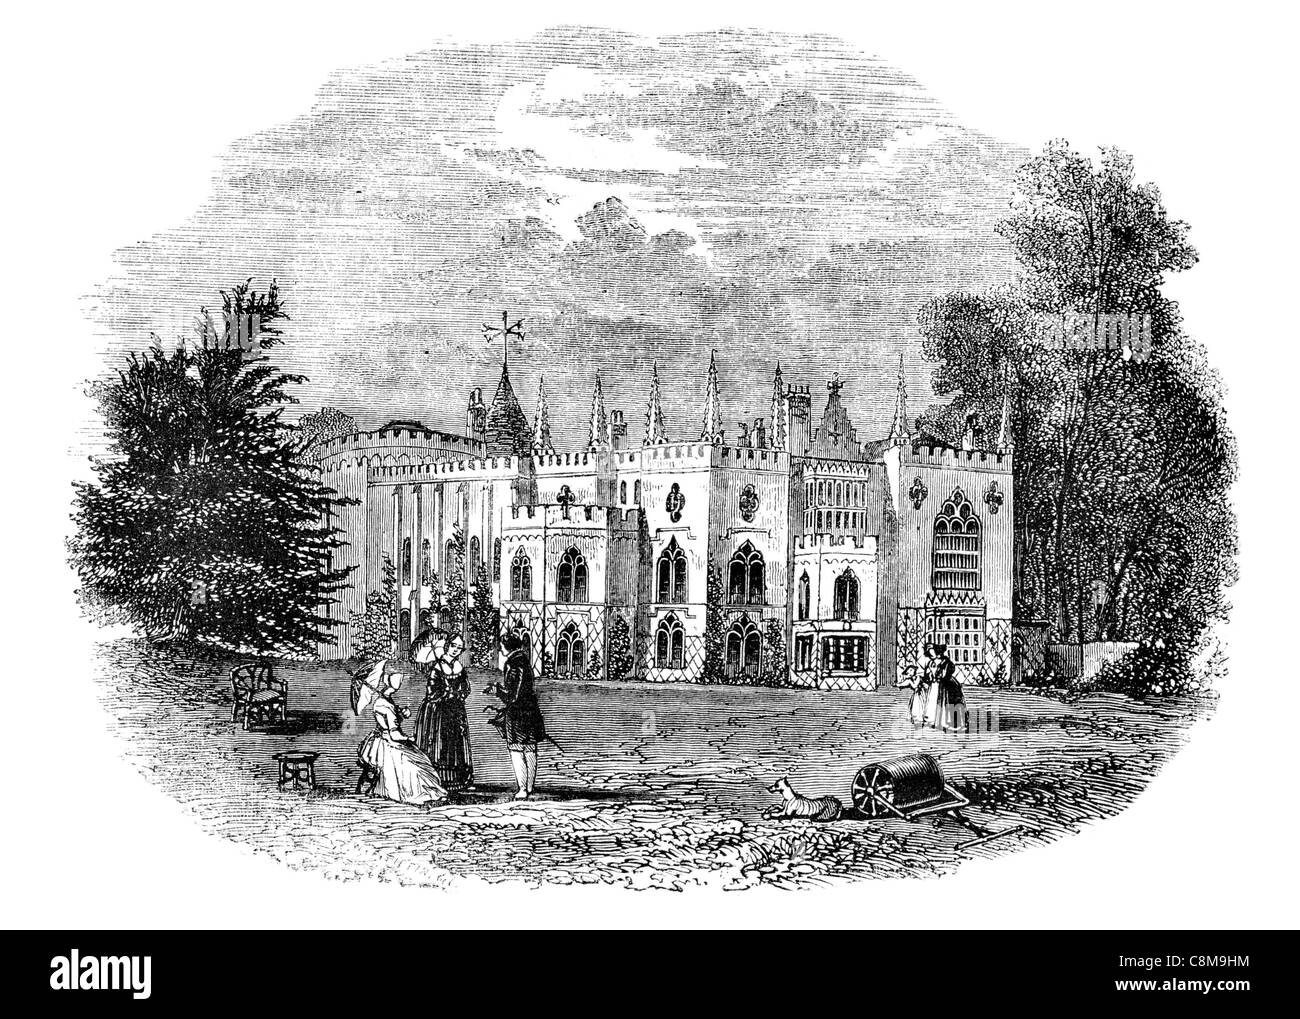 Strawberry Hill Gothic Revival villa Horace Walpole London Richmond Round Tower - Stock Image